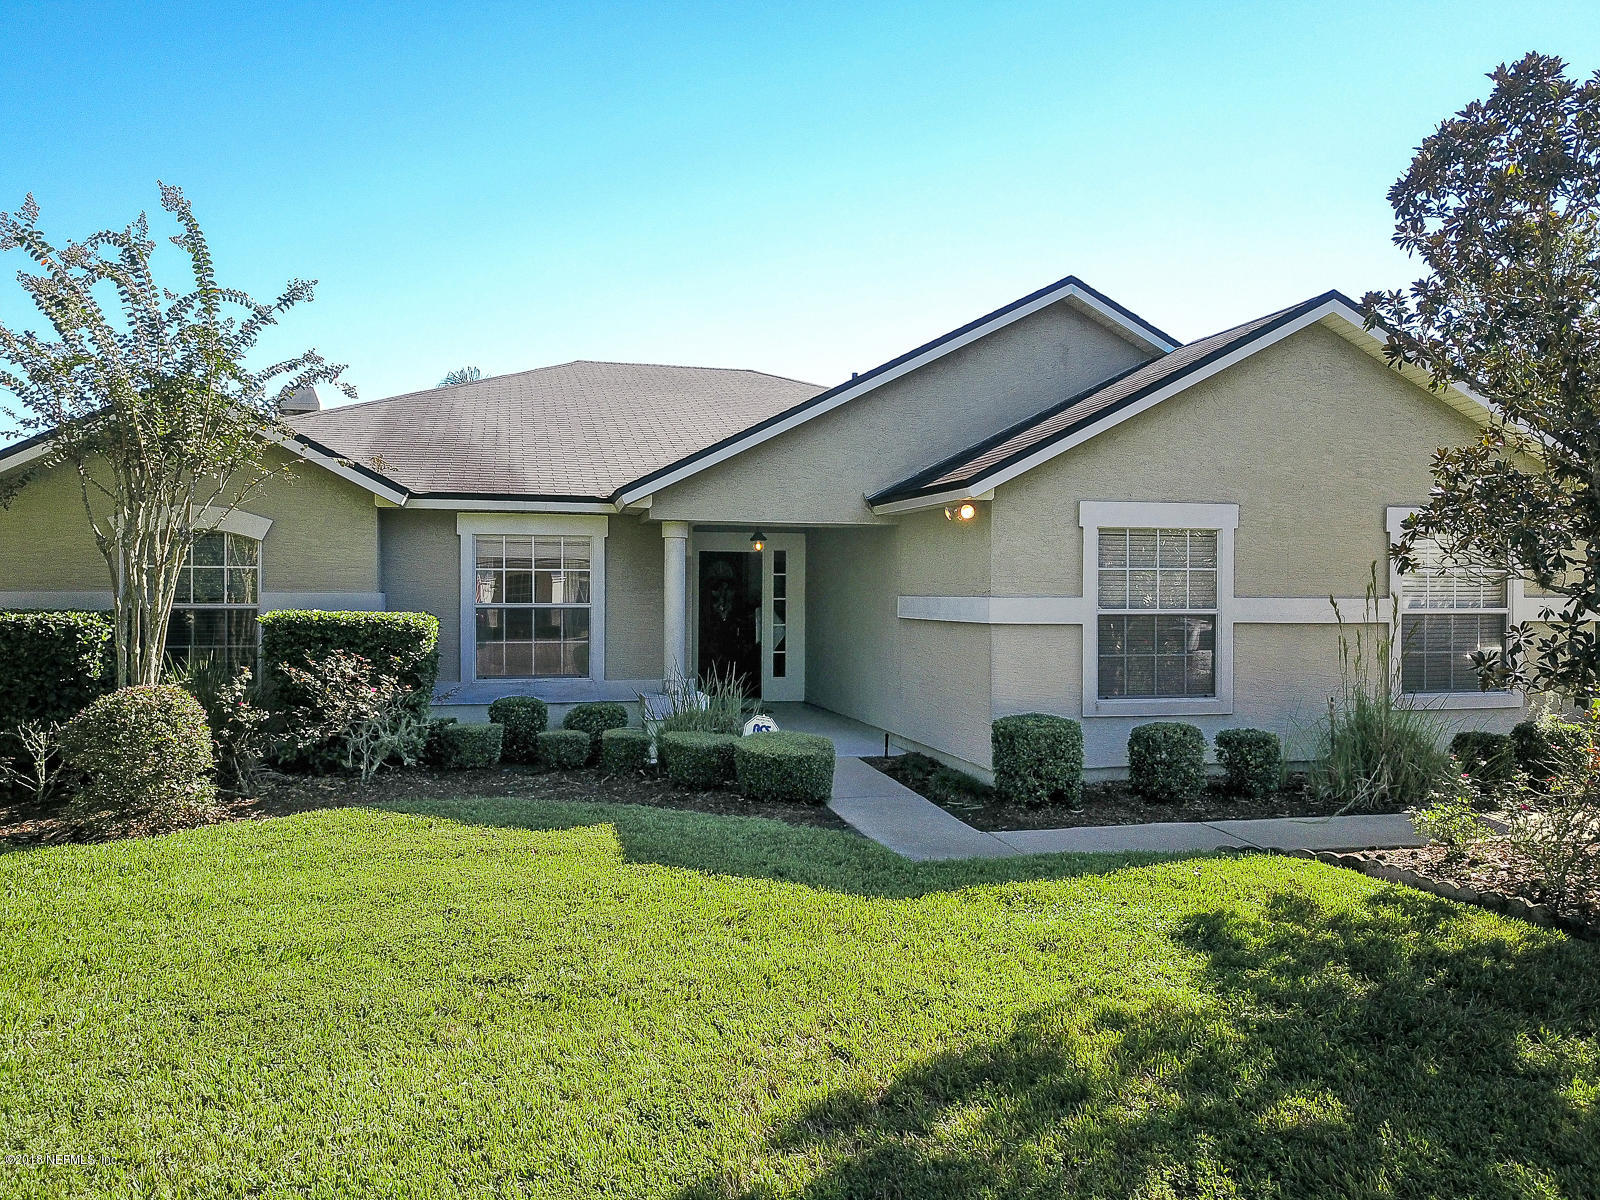 1913 TUSCAN OAKS, FLEMING ISLAND, FLORIDA 32003, 4 Bedrooms Bedrooms, ,2 BathroomsBathrooms,Residential - single family,For sale,TUSCAN OAKS,963337